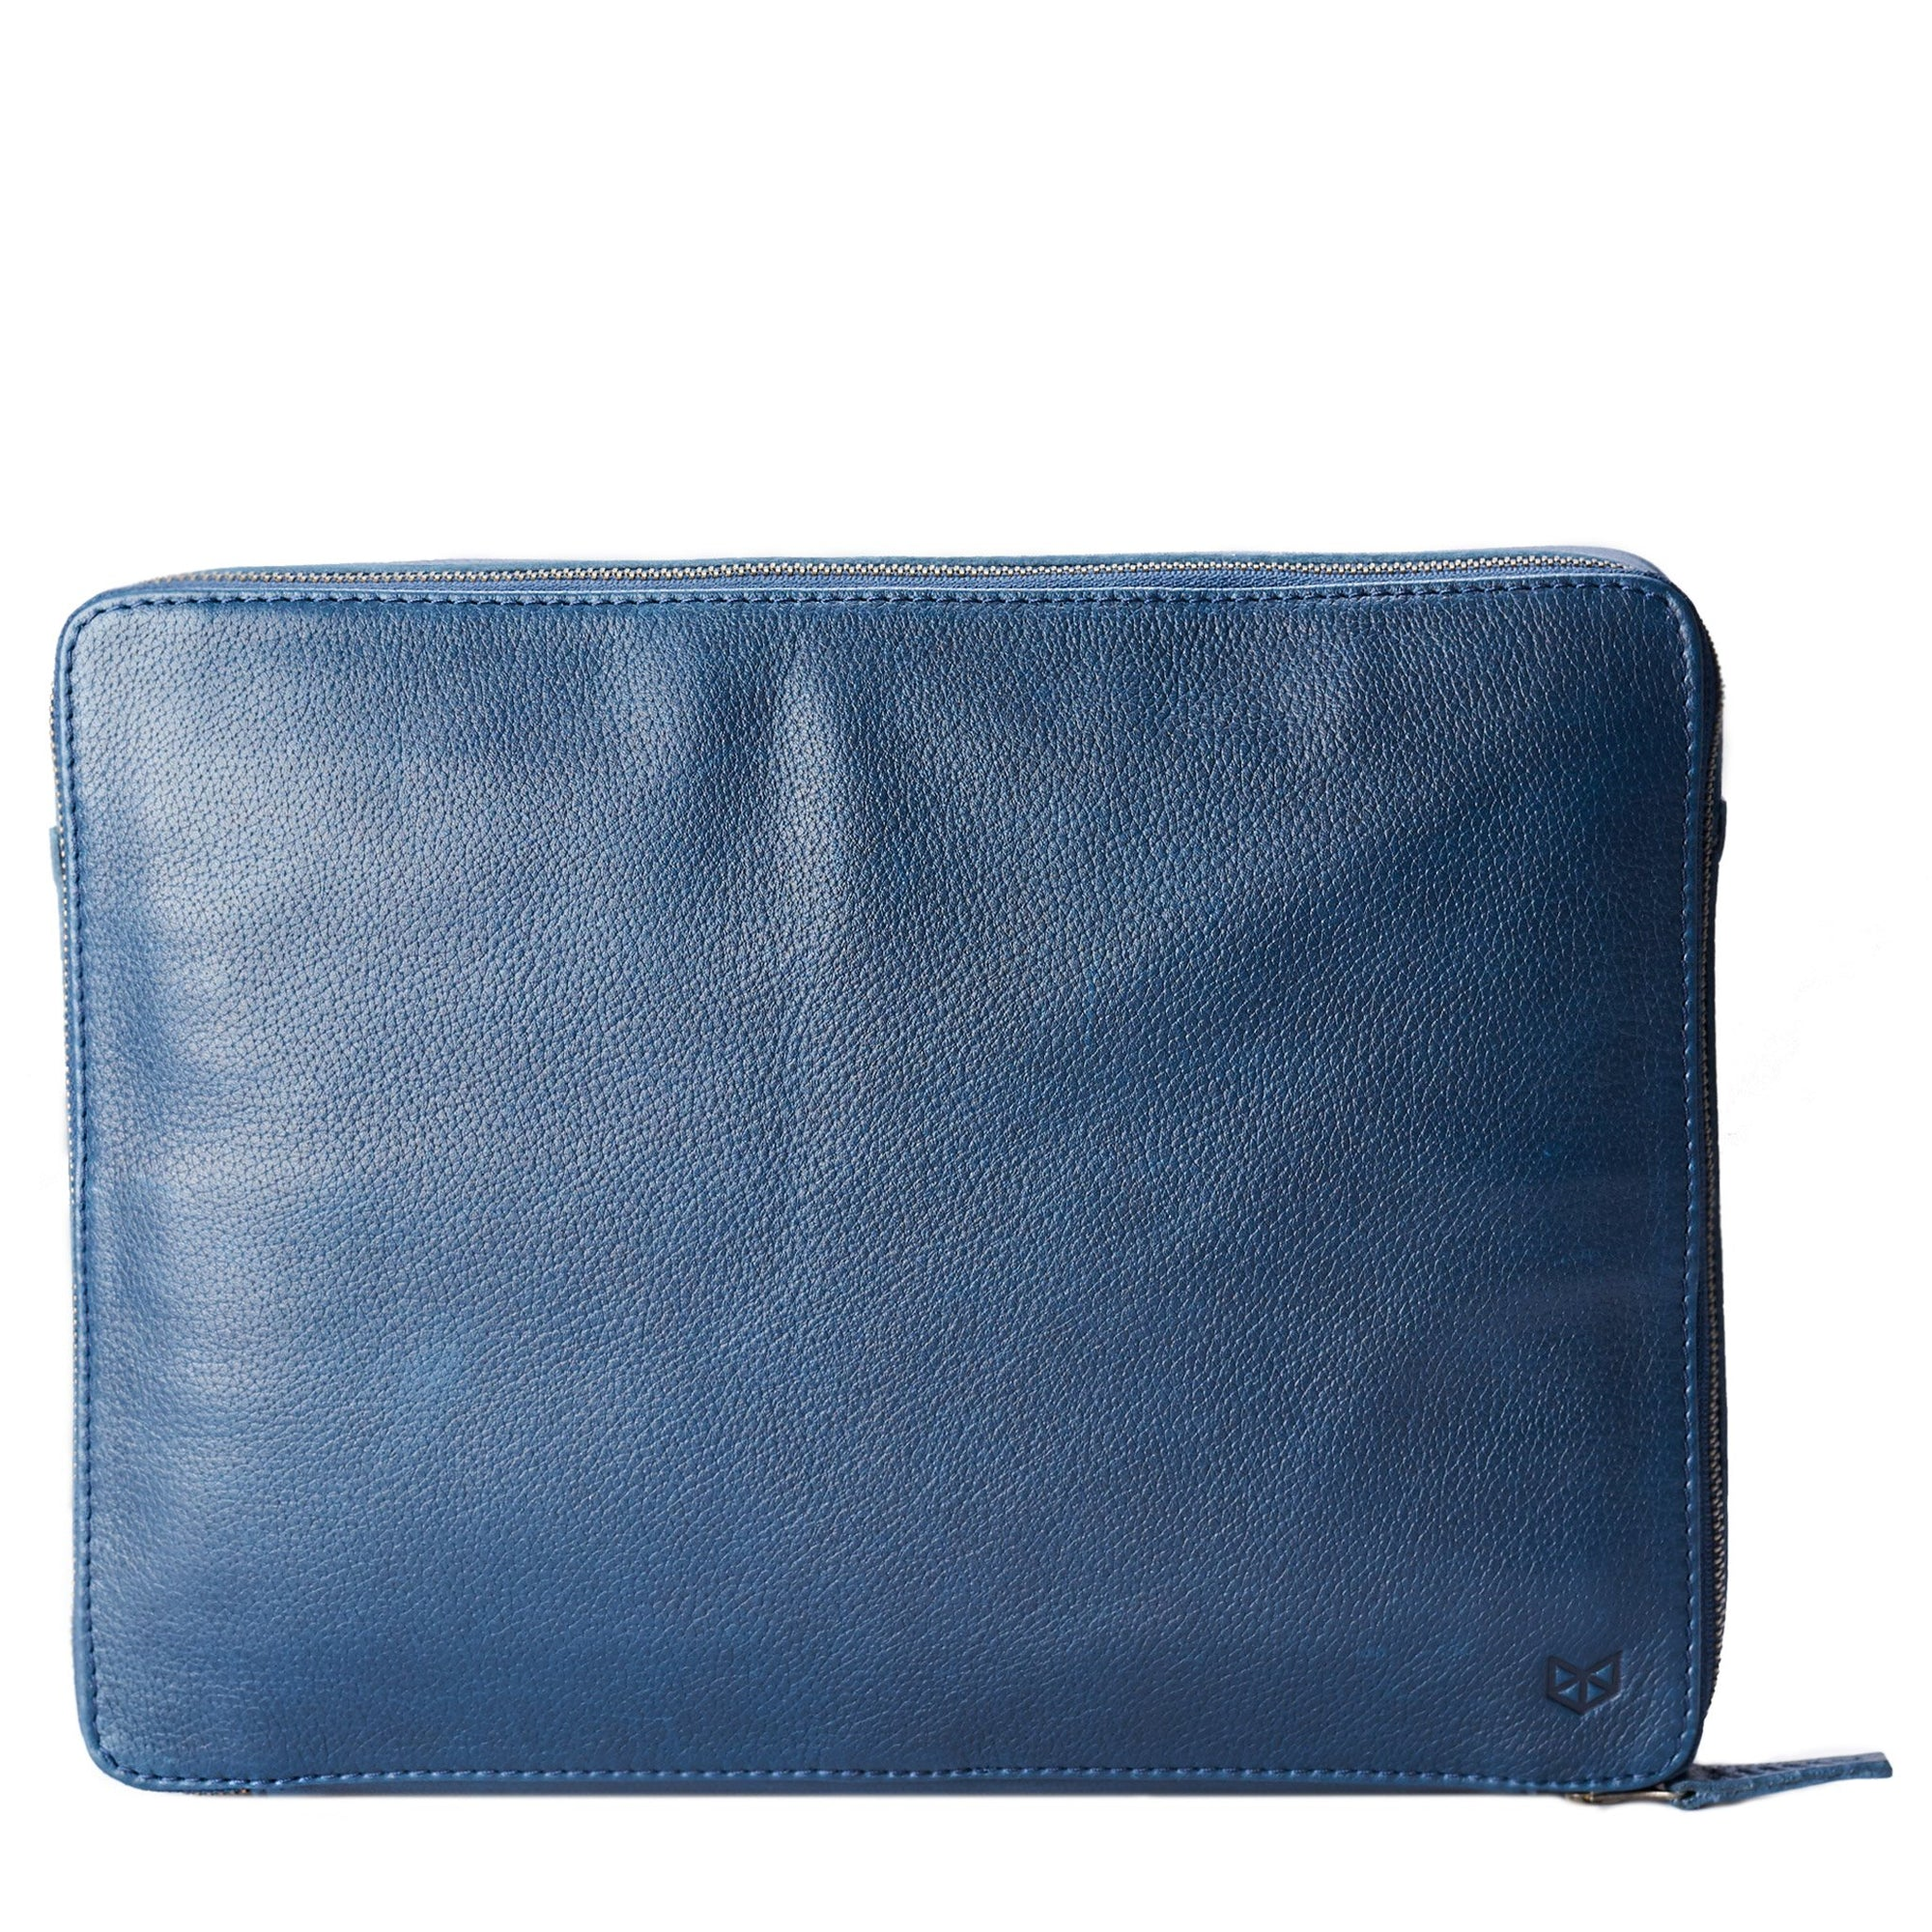 Men's handmade blue leather 15 inch tech laptop tablet bag is perfect to travel organized.